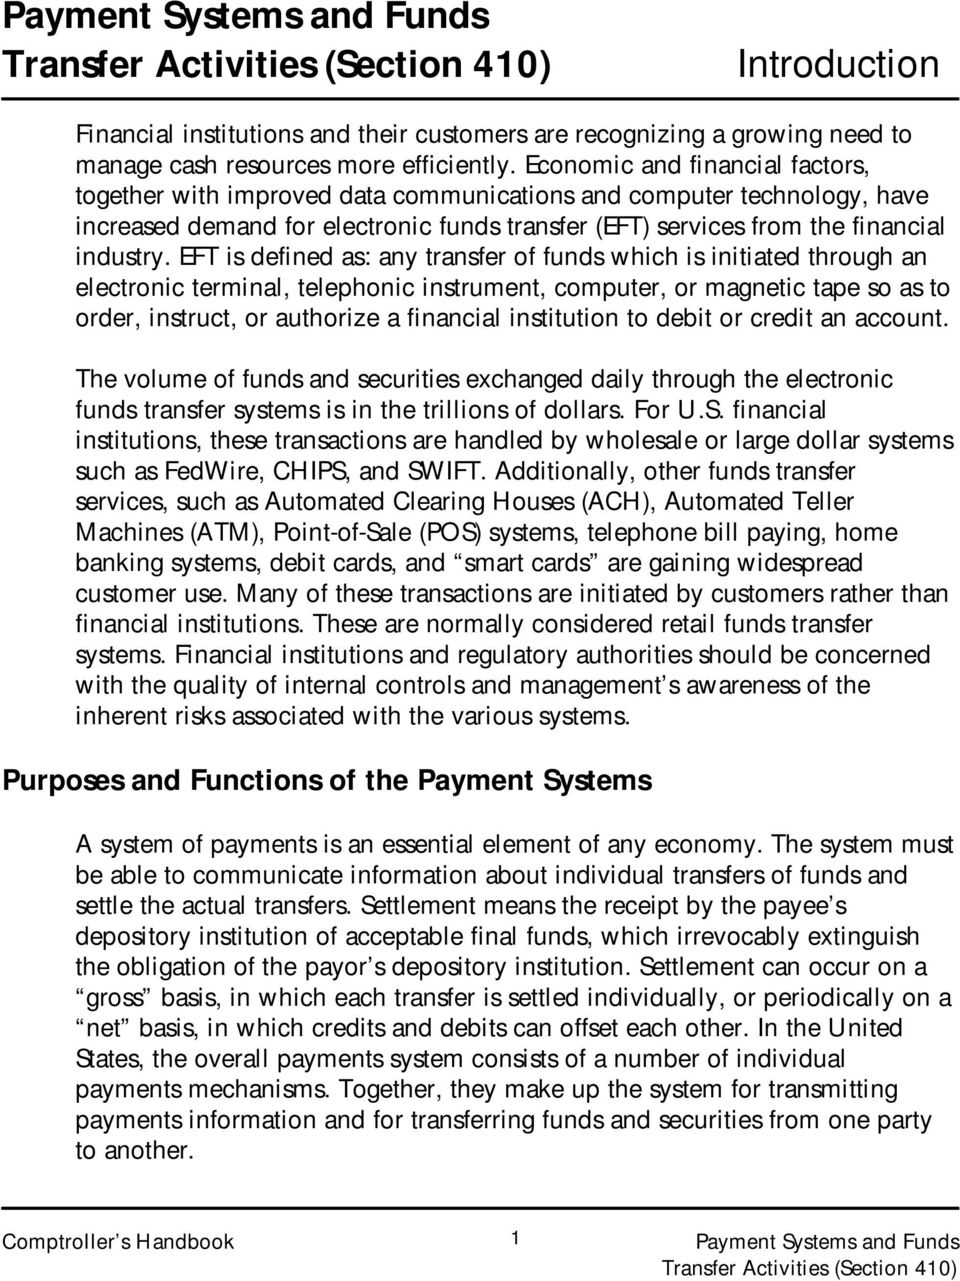 payment systems and funds transfer activities - pdf